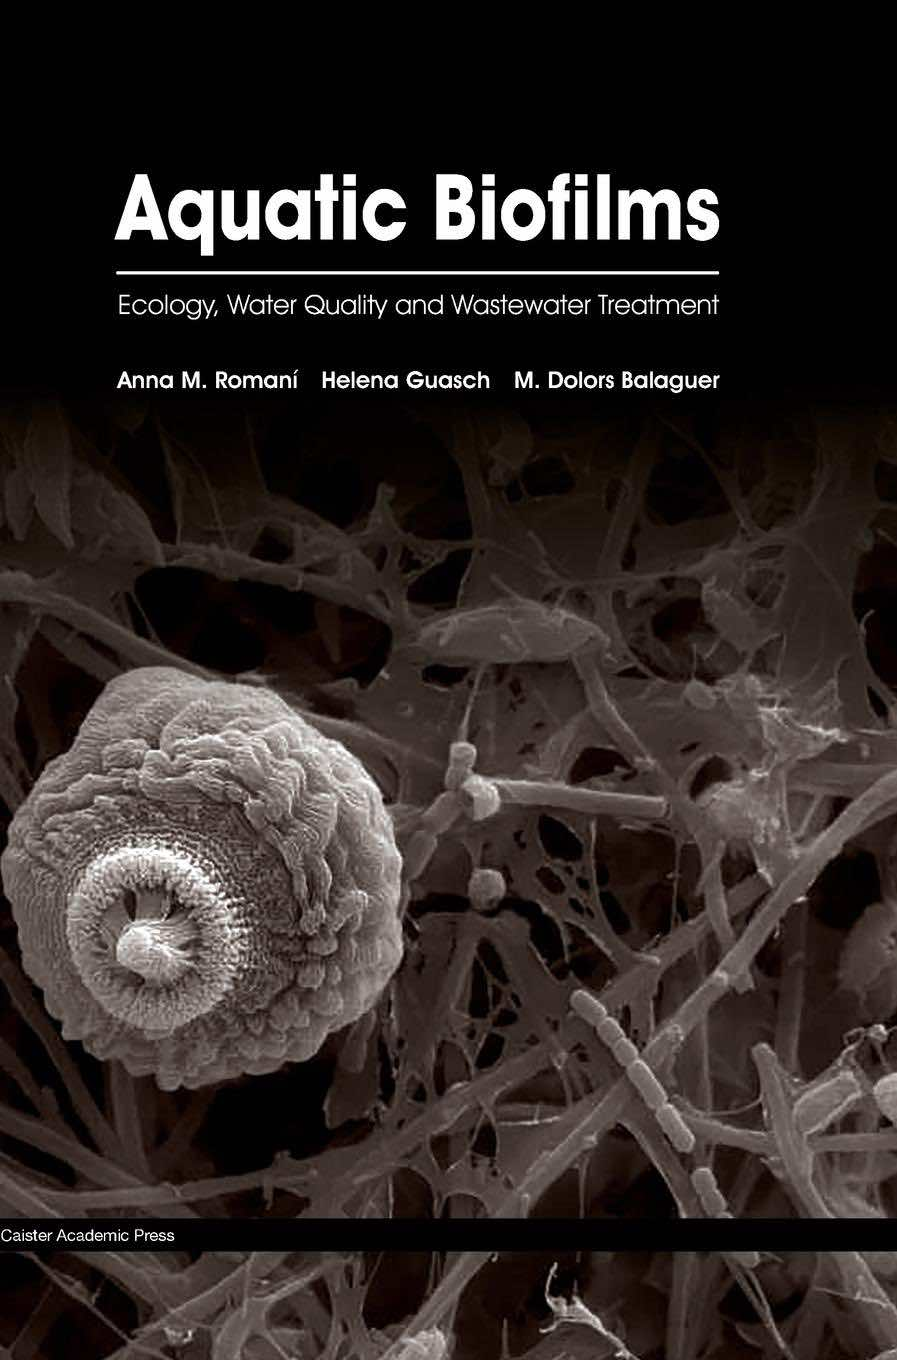 Aquatic Biofilms book